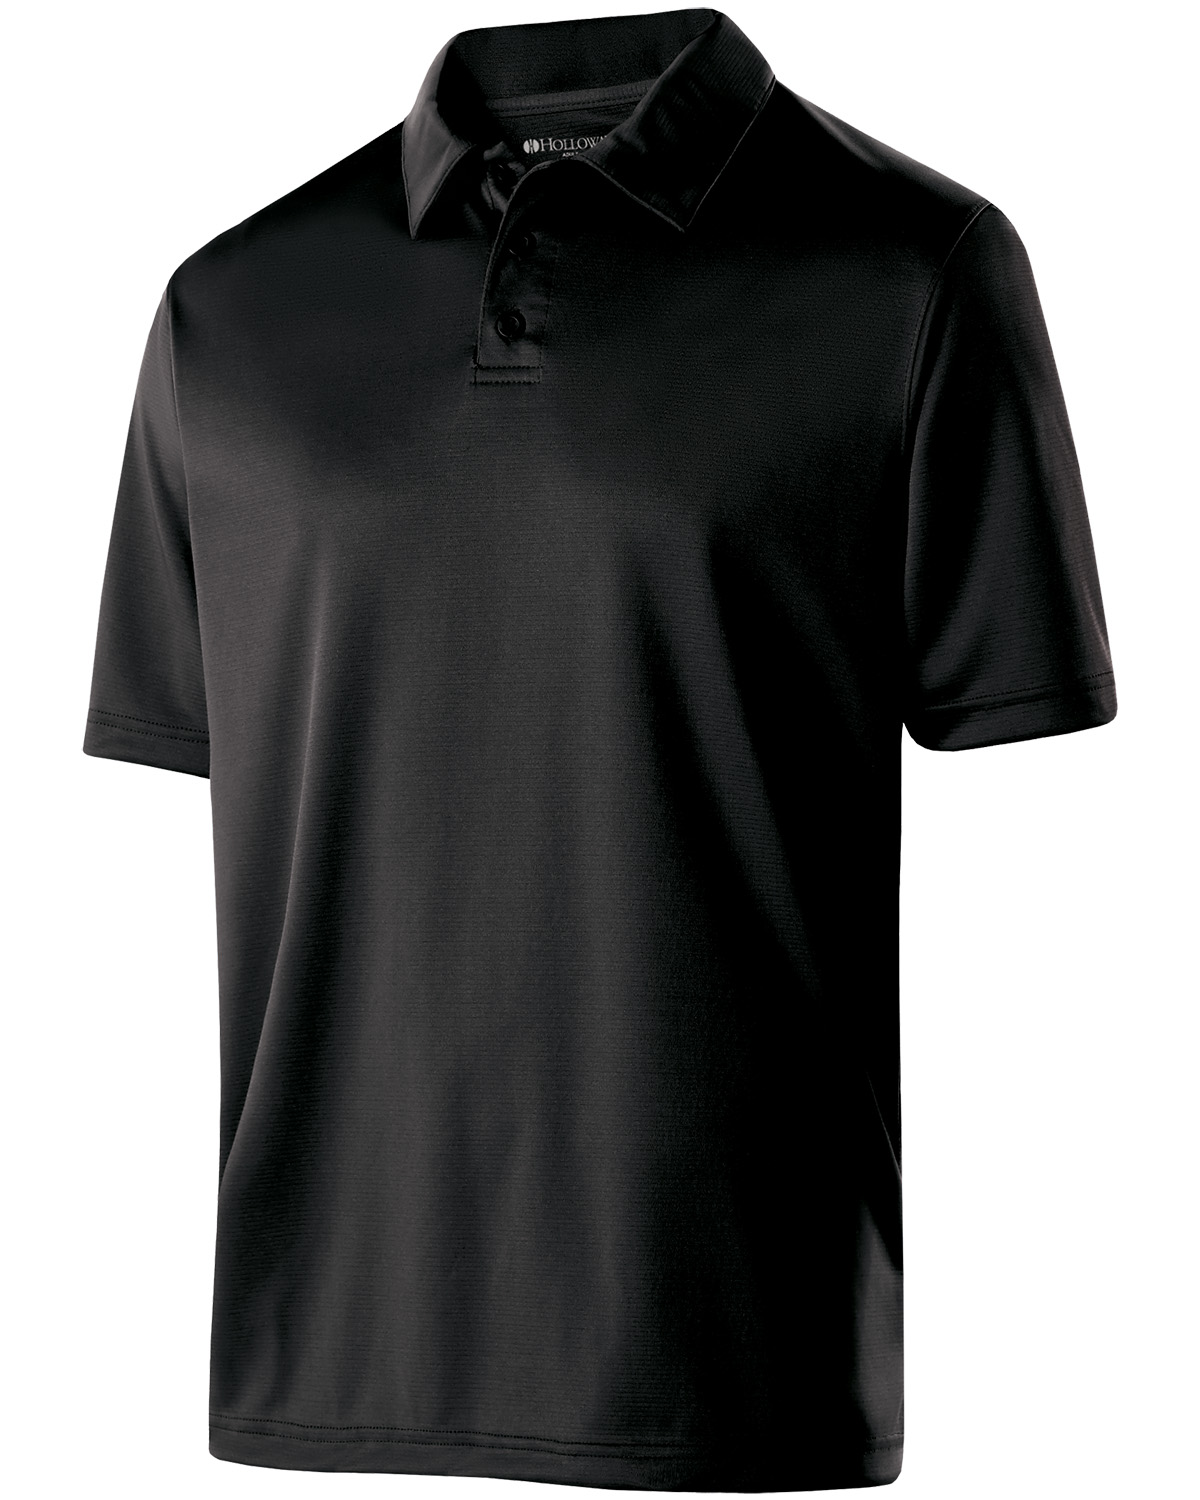 Holloway 222519 - Adult Polyester Textured Stripe Shift Polo